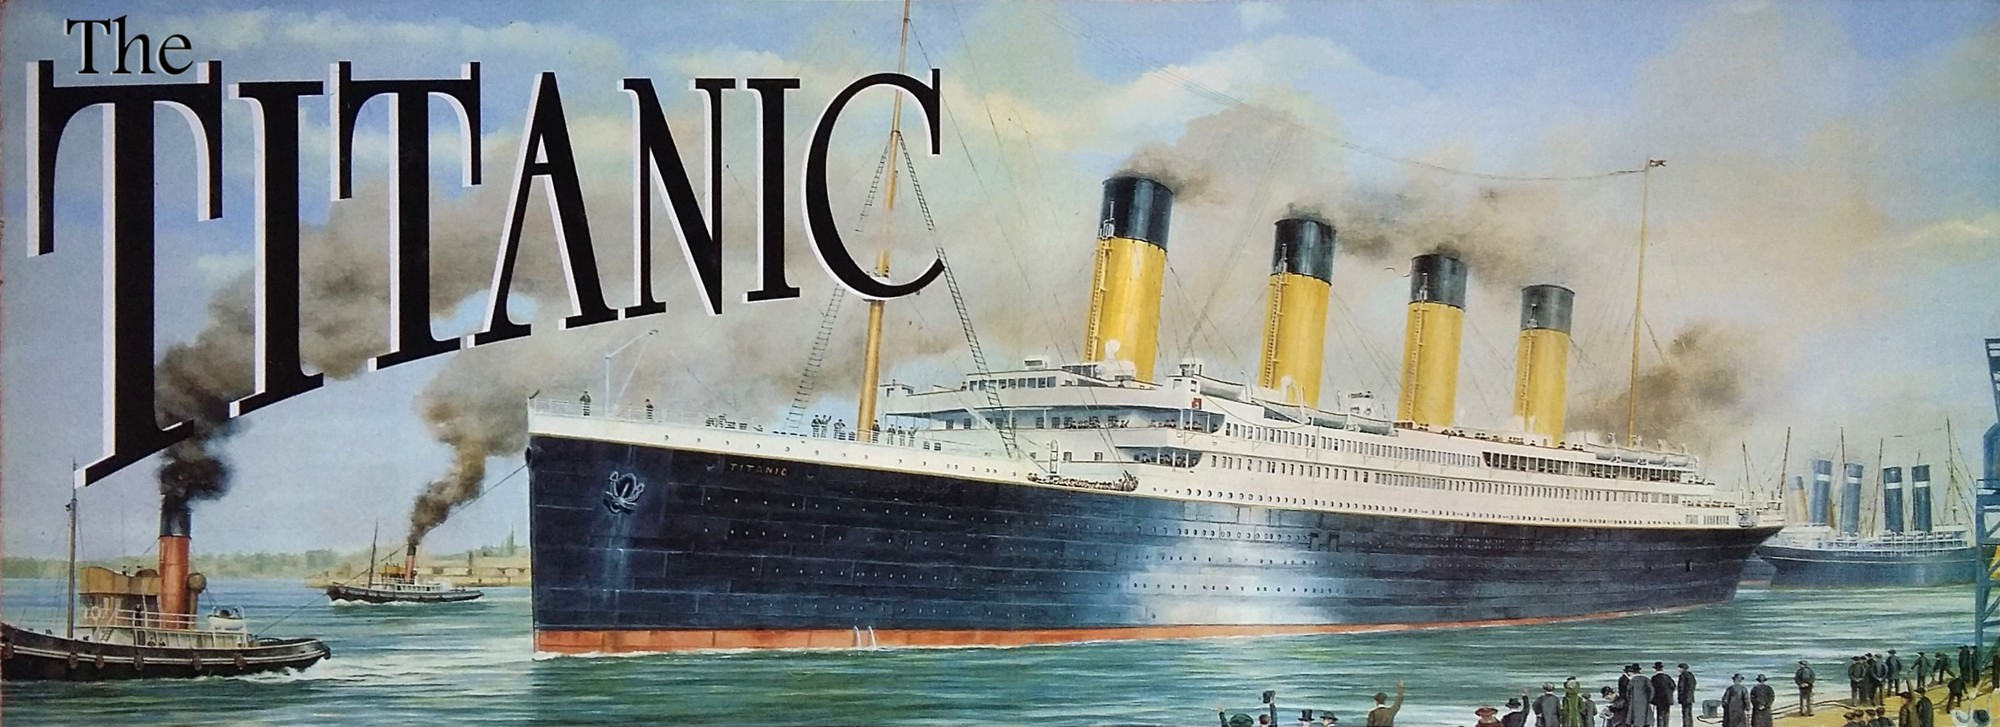 The Titanic (I)